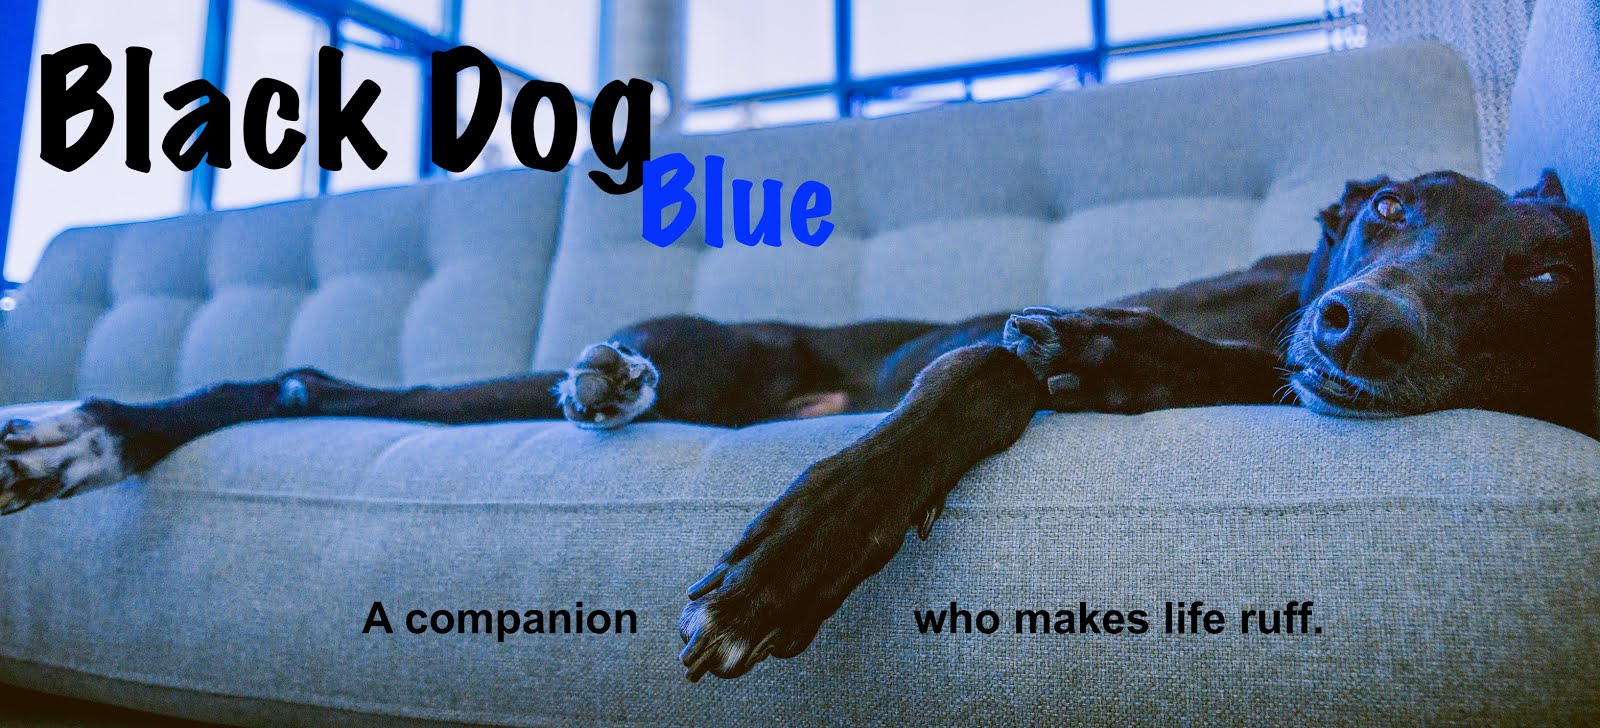 Black Dog Blue